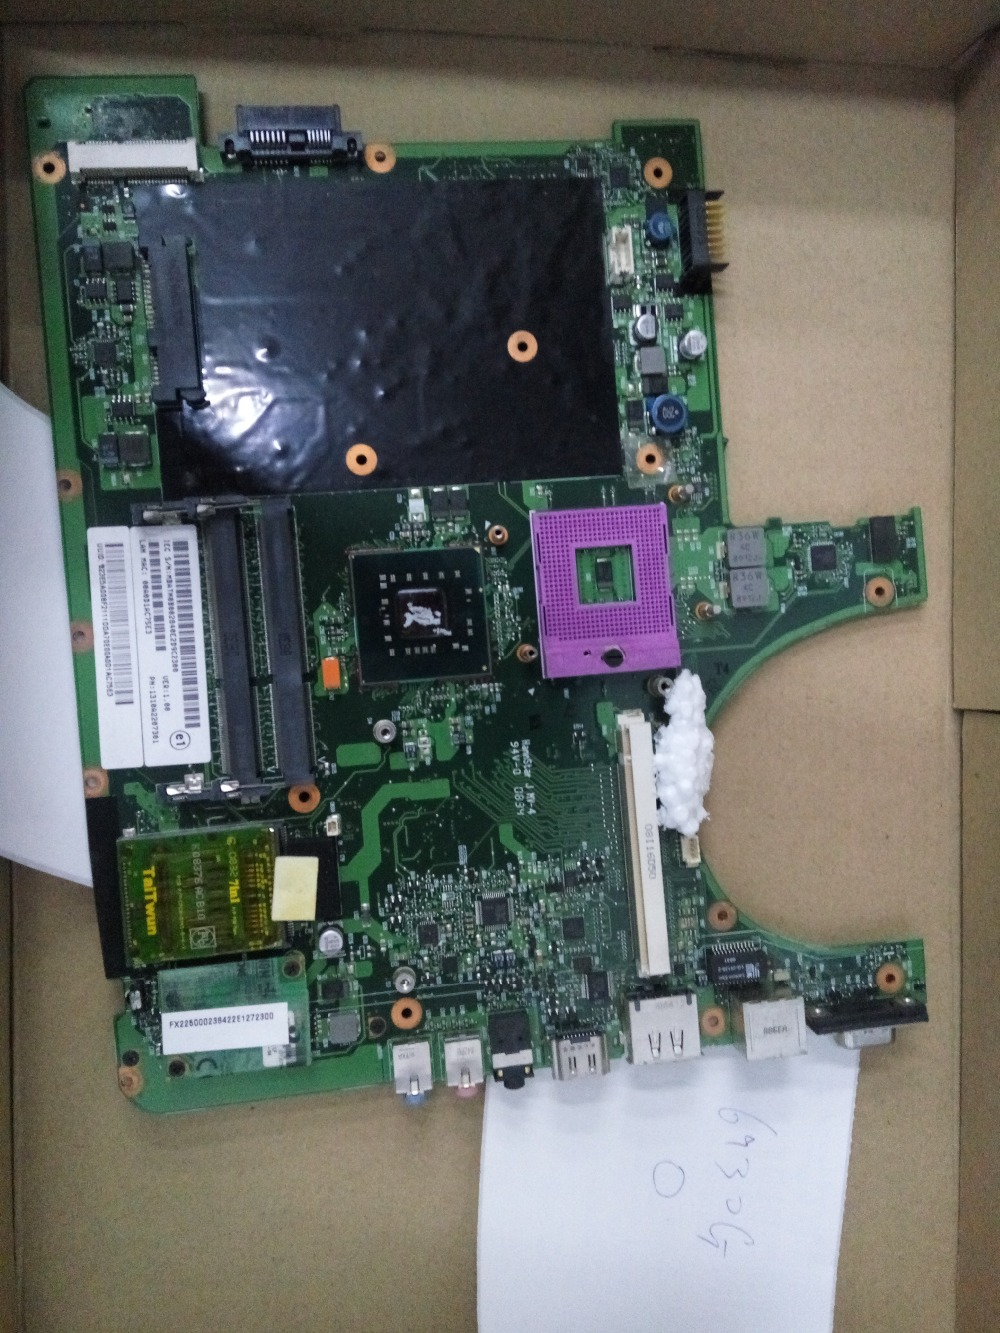 6930G AS6930G 6930 connect board connect with motherboard tested by system lap connect board g71g motherboard tested by system lap connect board page 5